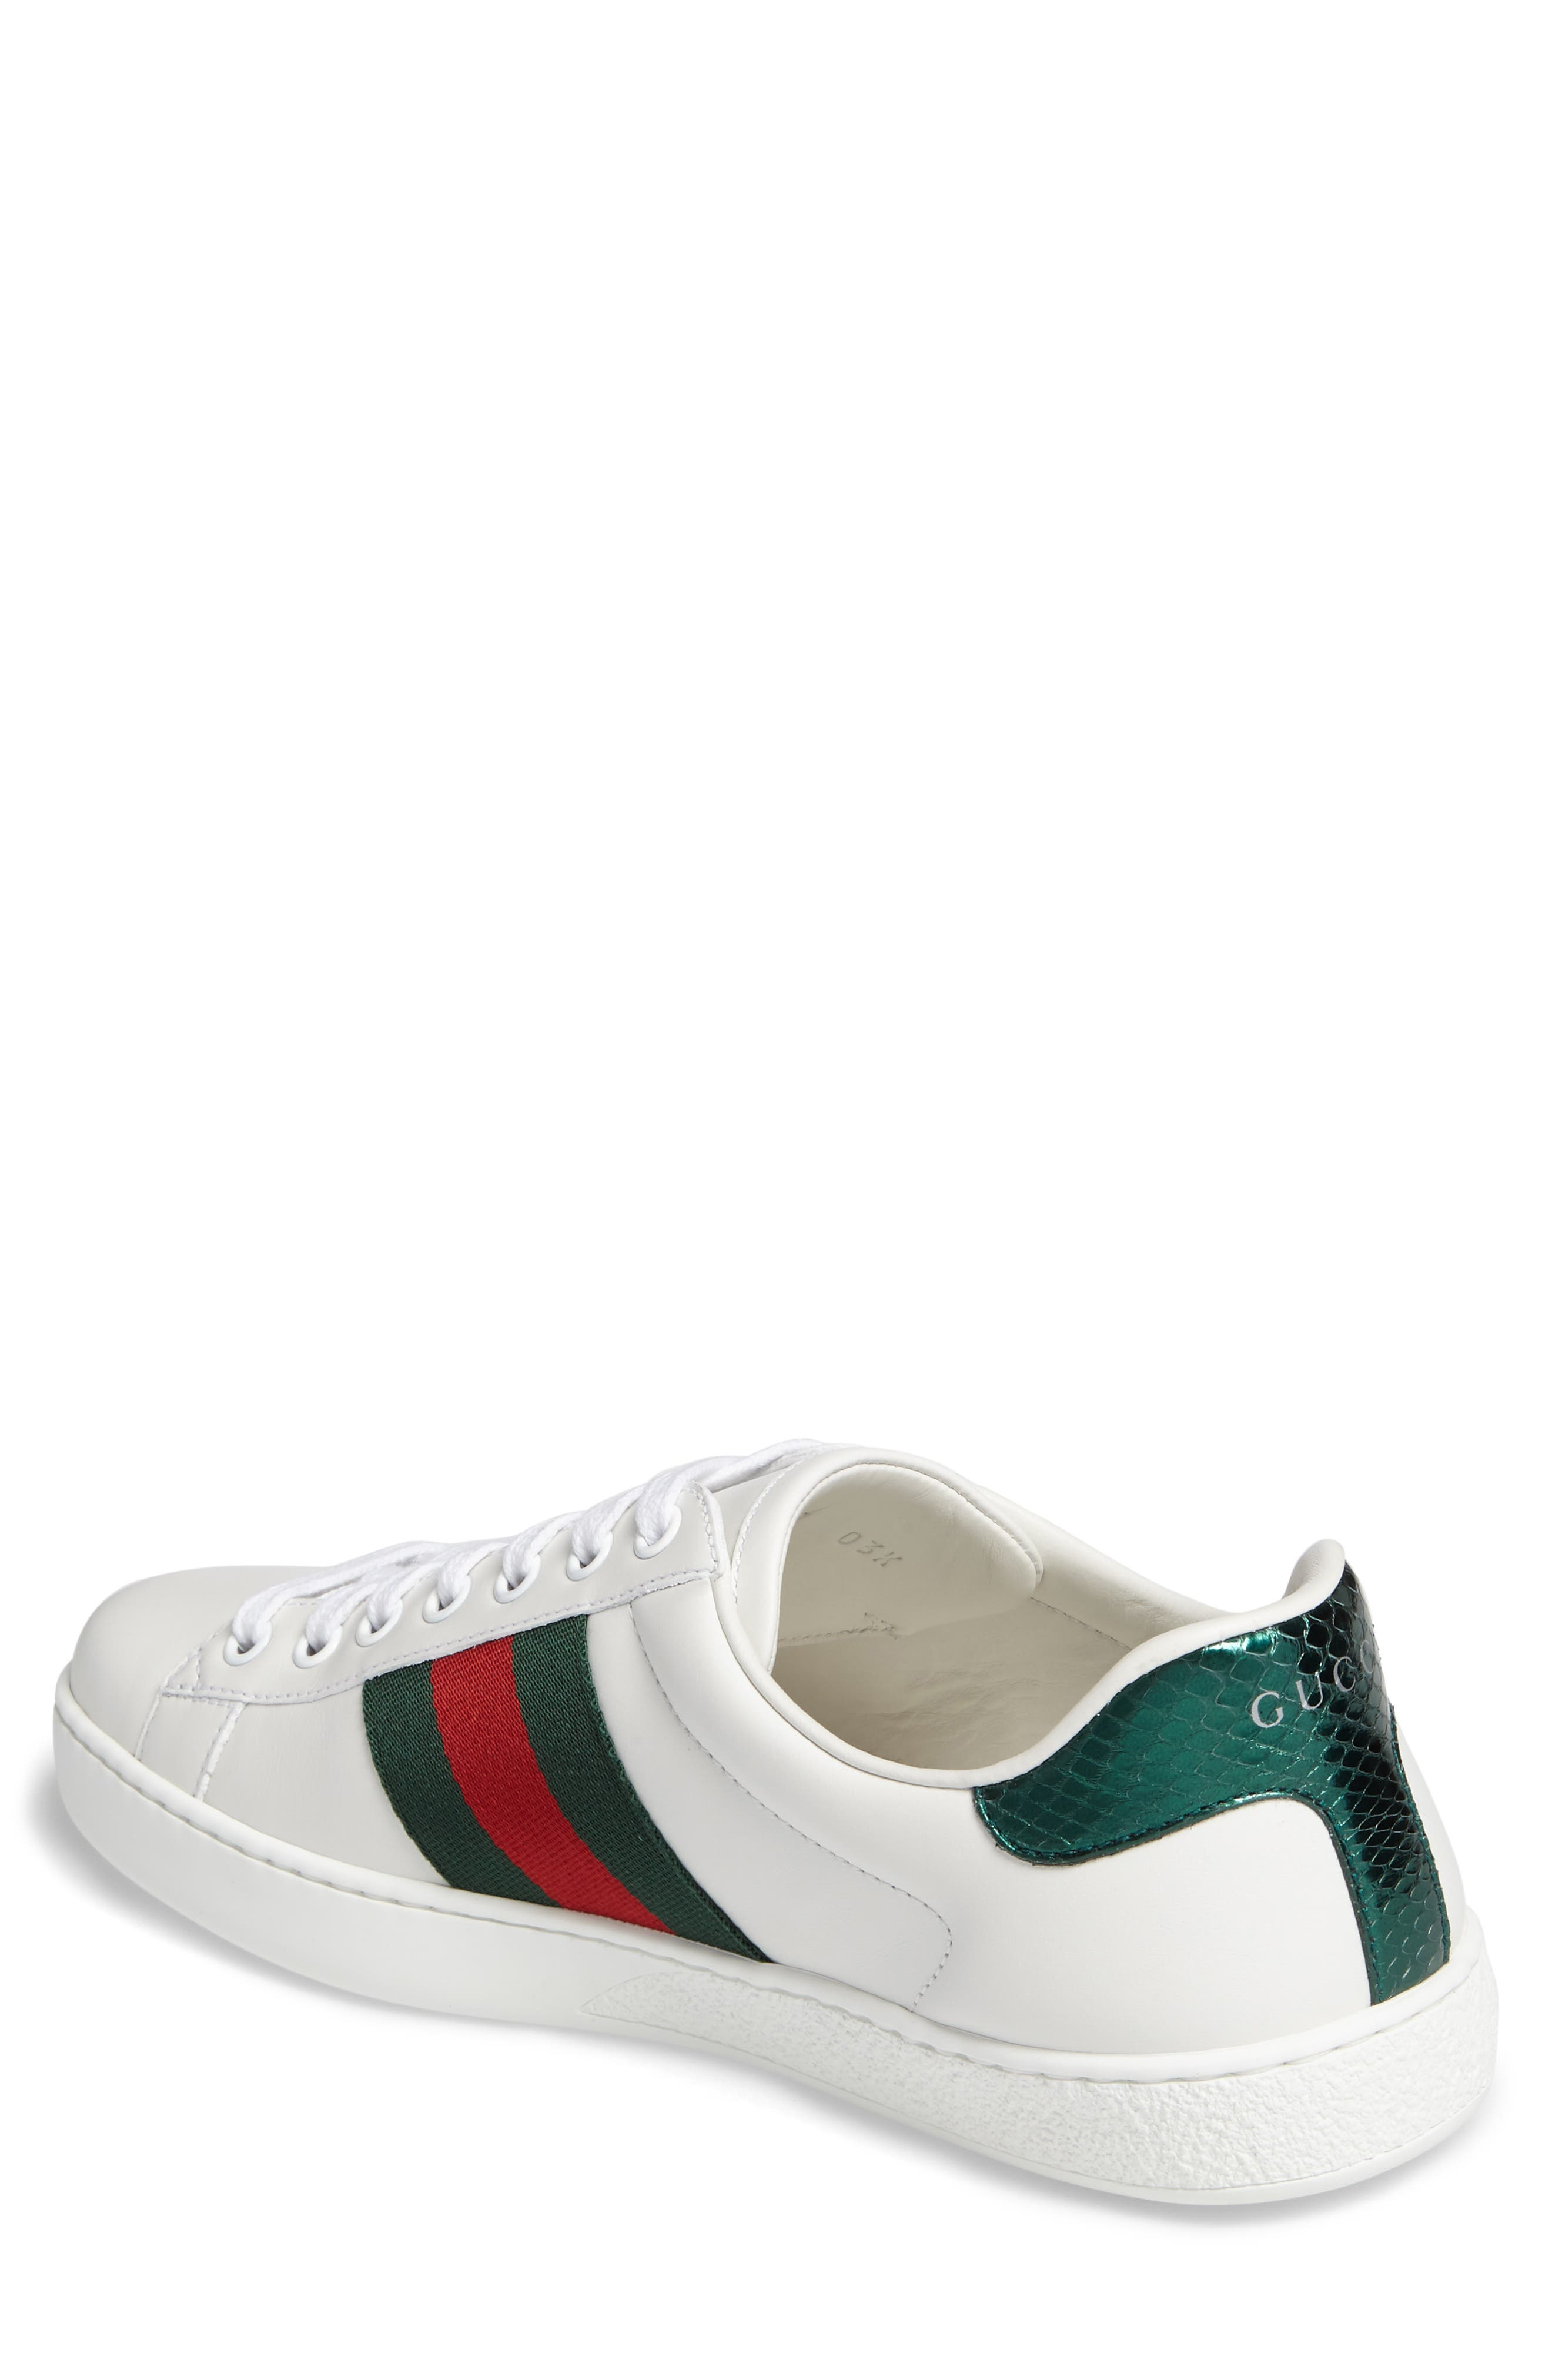 cf0080f244d Gucci Men s White Sneakers   Loafers